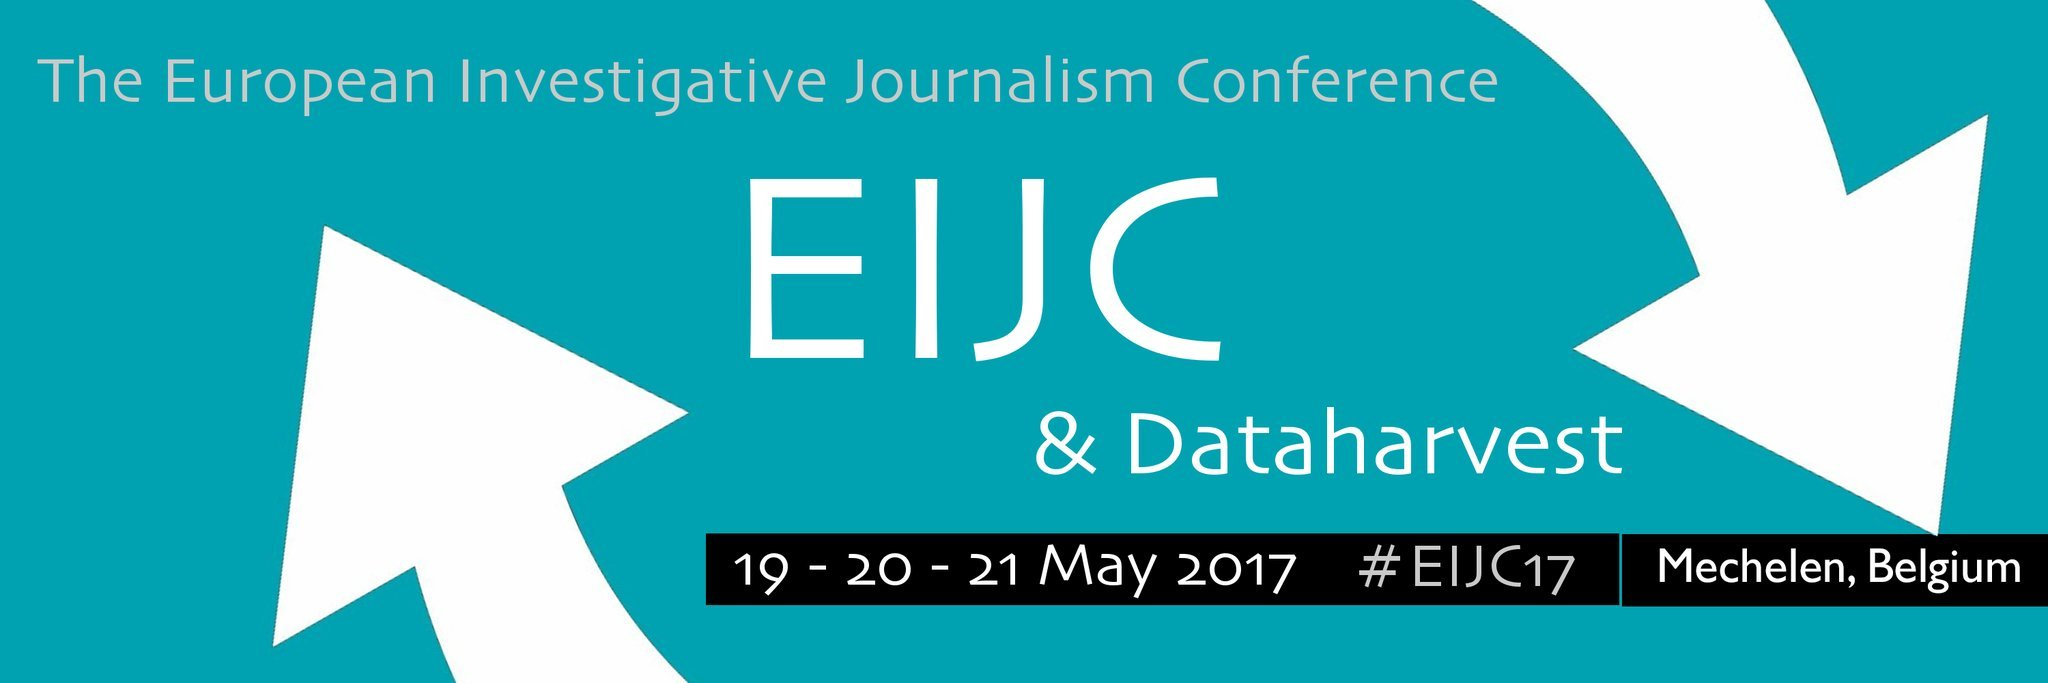 Dataharvest #EIJC17 starts with a pre-conference Hack Day on Thursday 18 May. Info + registration: https://t.co/5kWrsBtqnZ #datajournalism https://t.co/F3ofFl3NN5